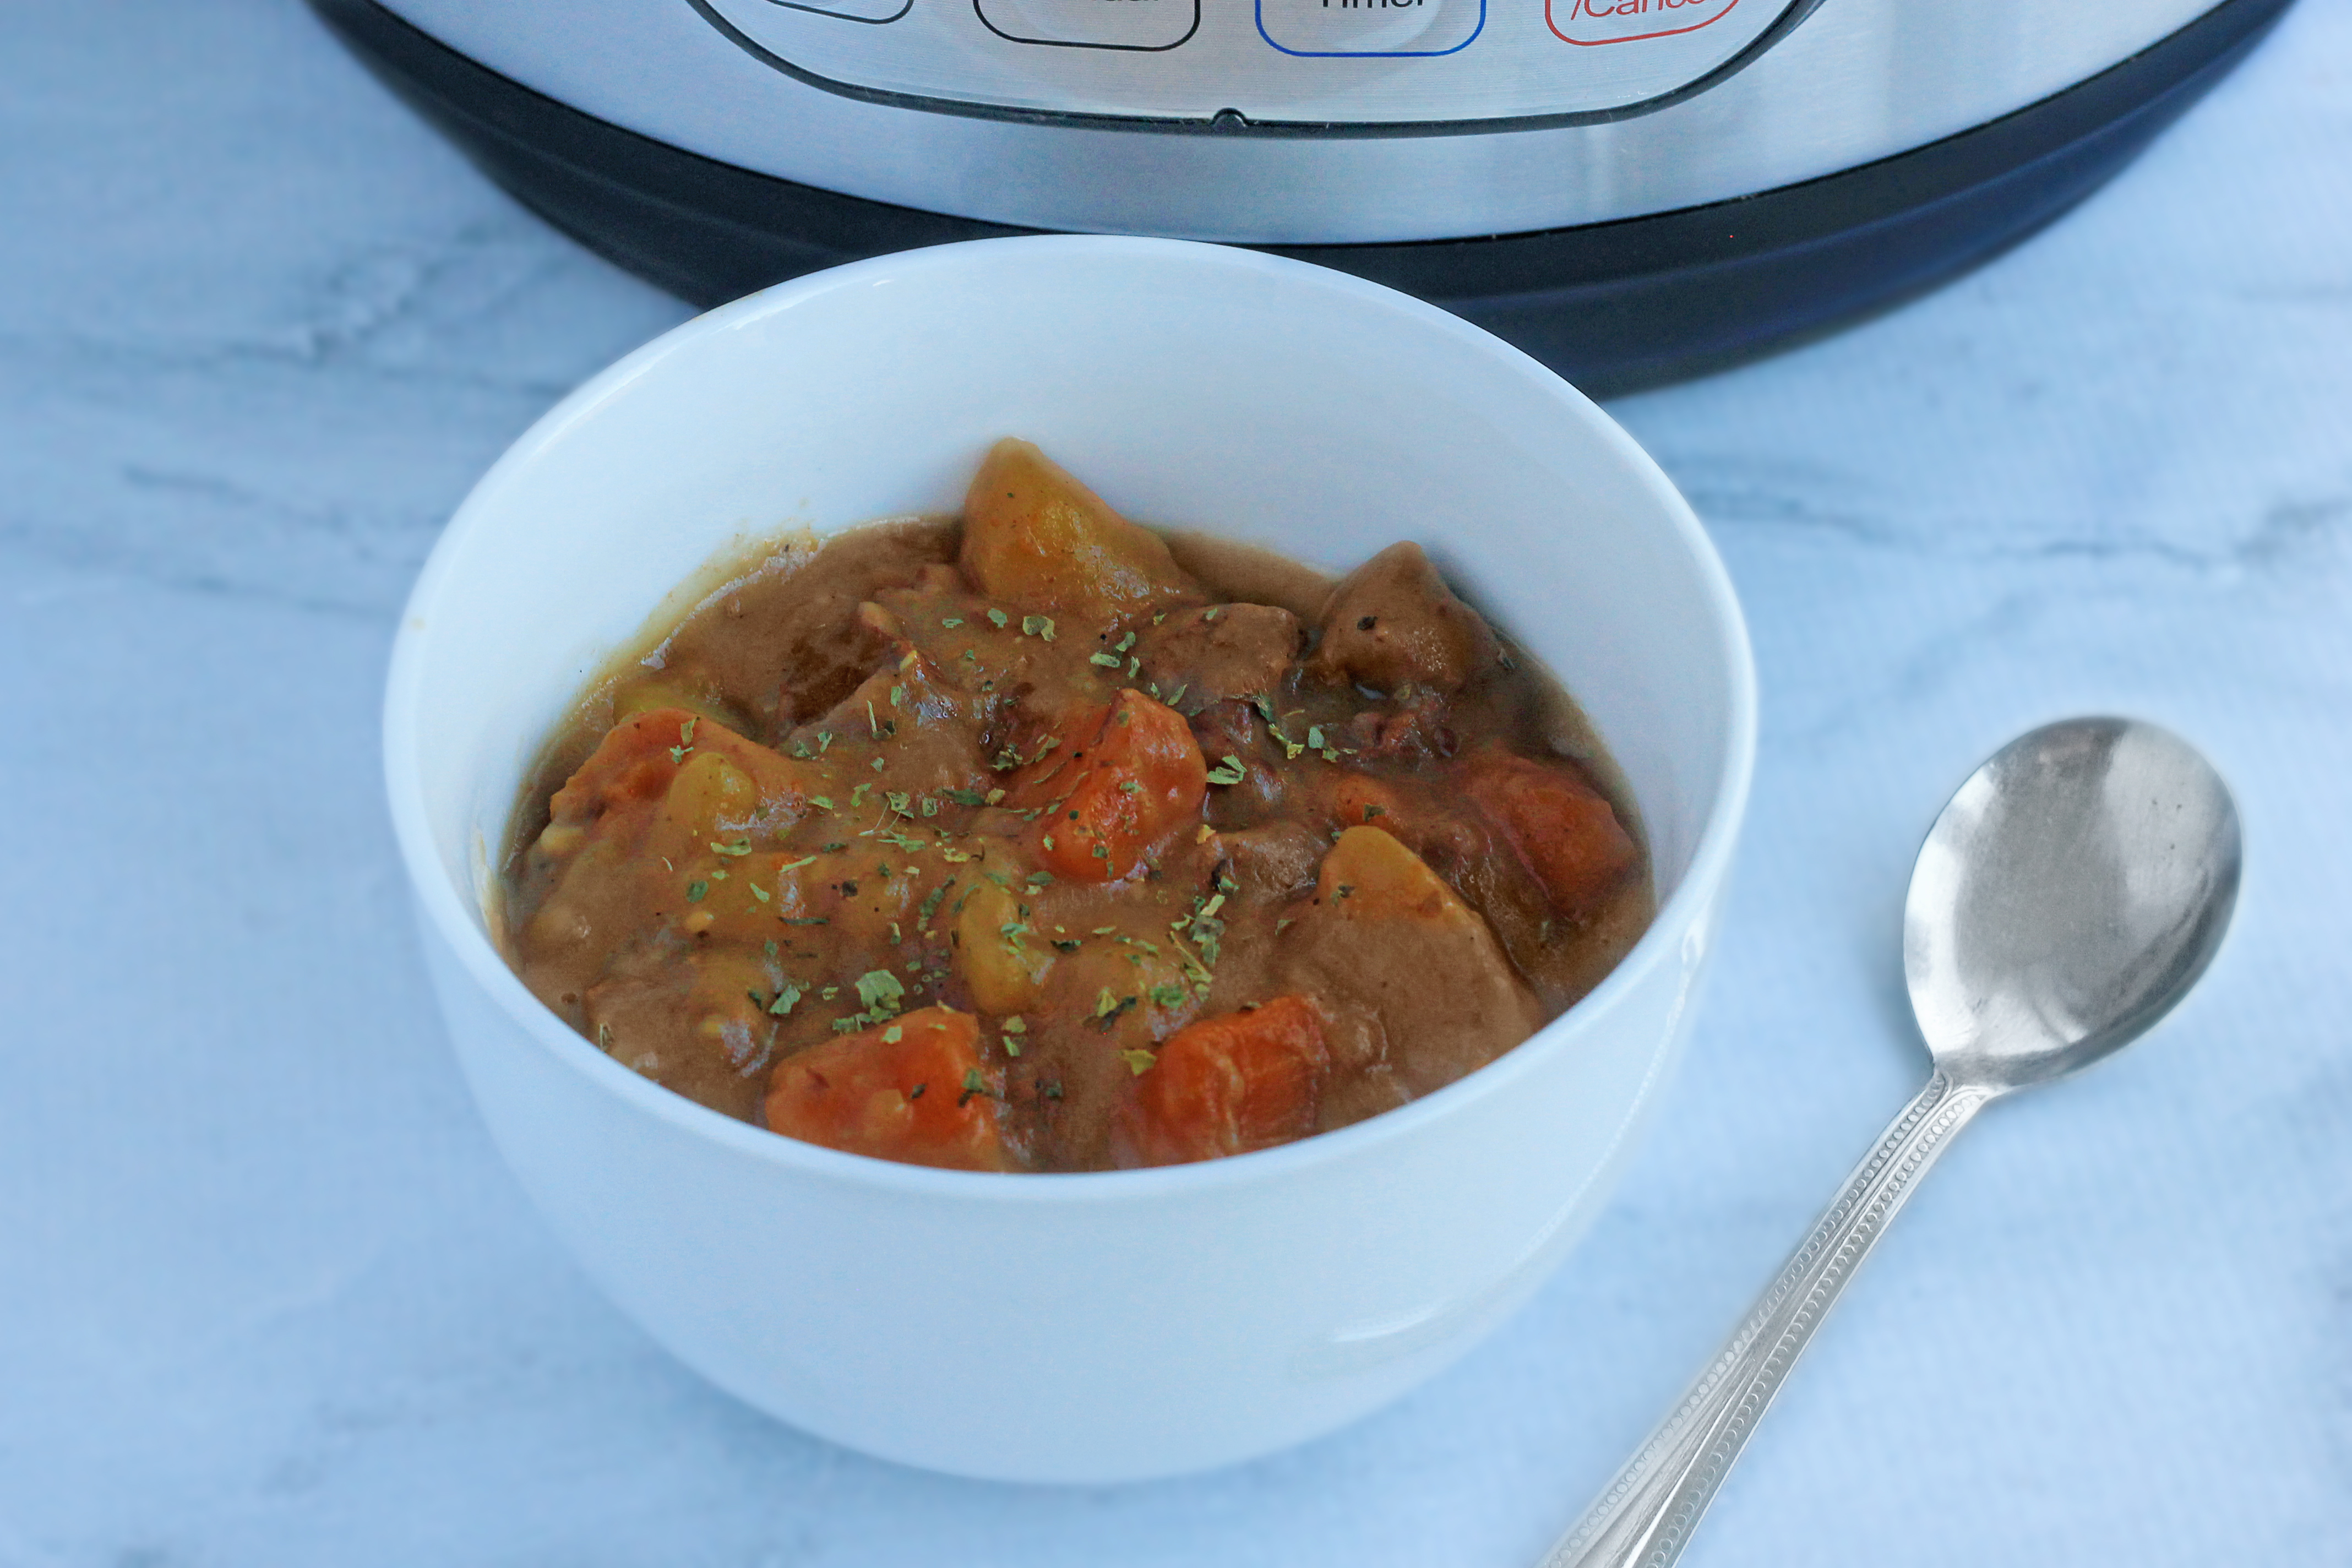 How to make Beef Stew with the Instant Pot